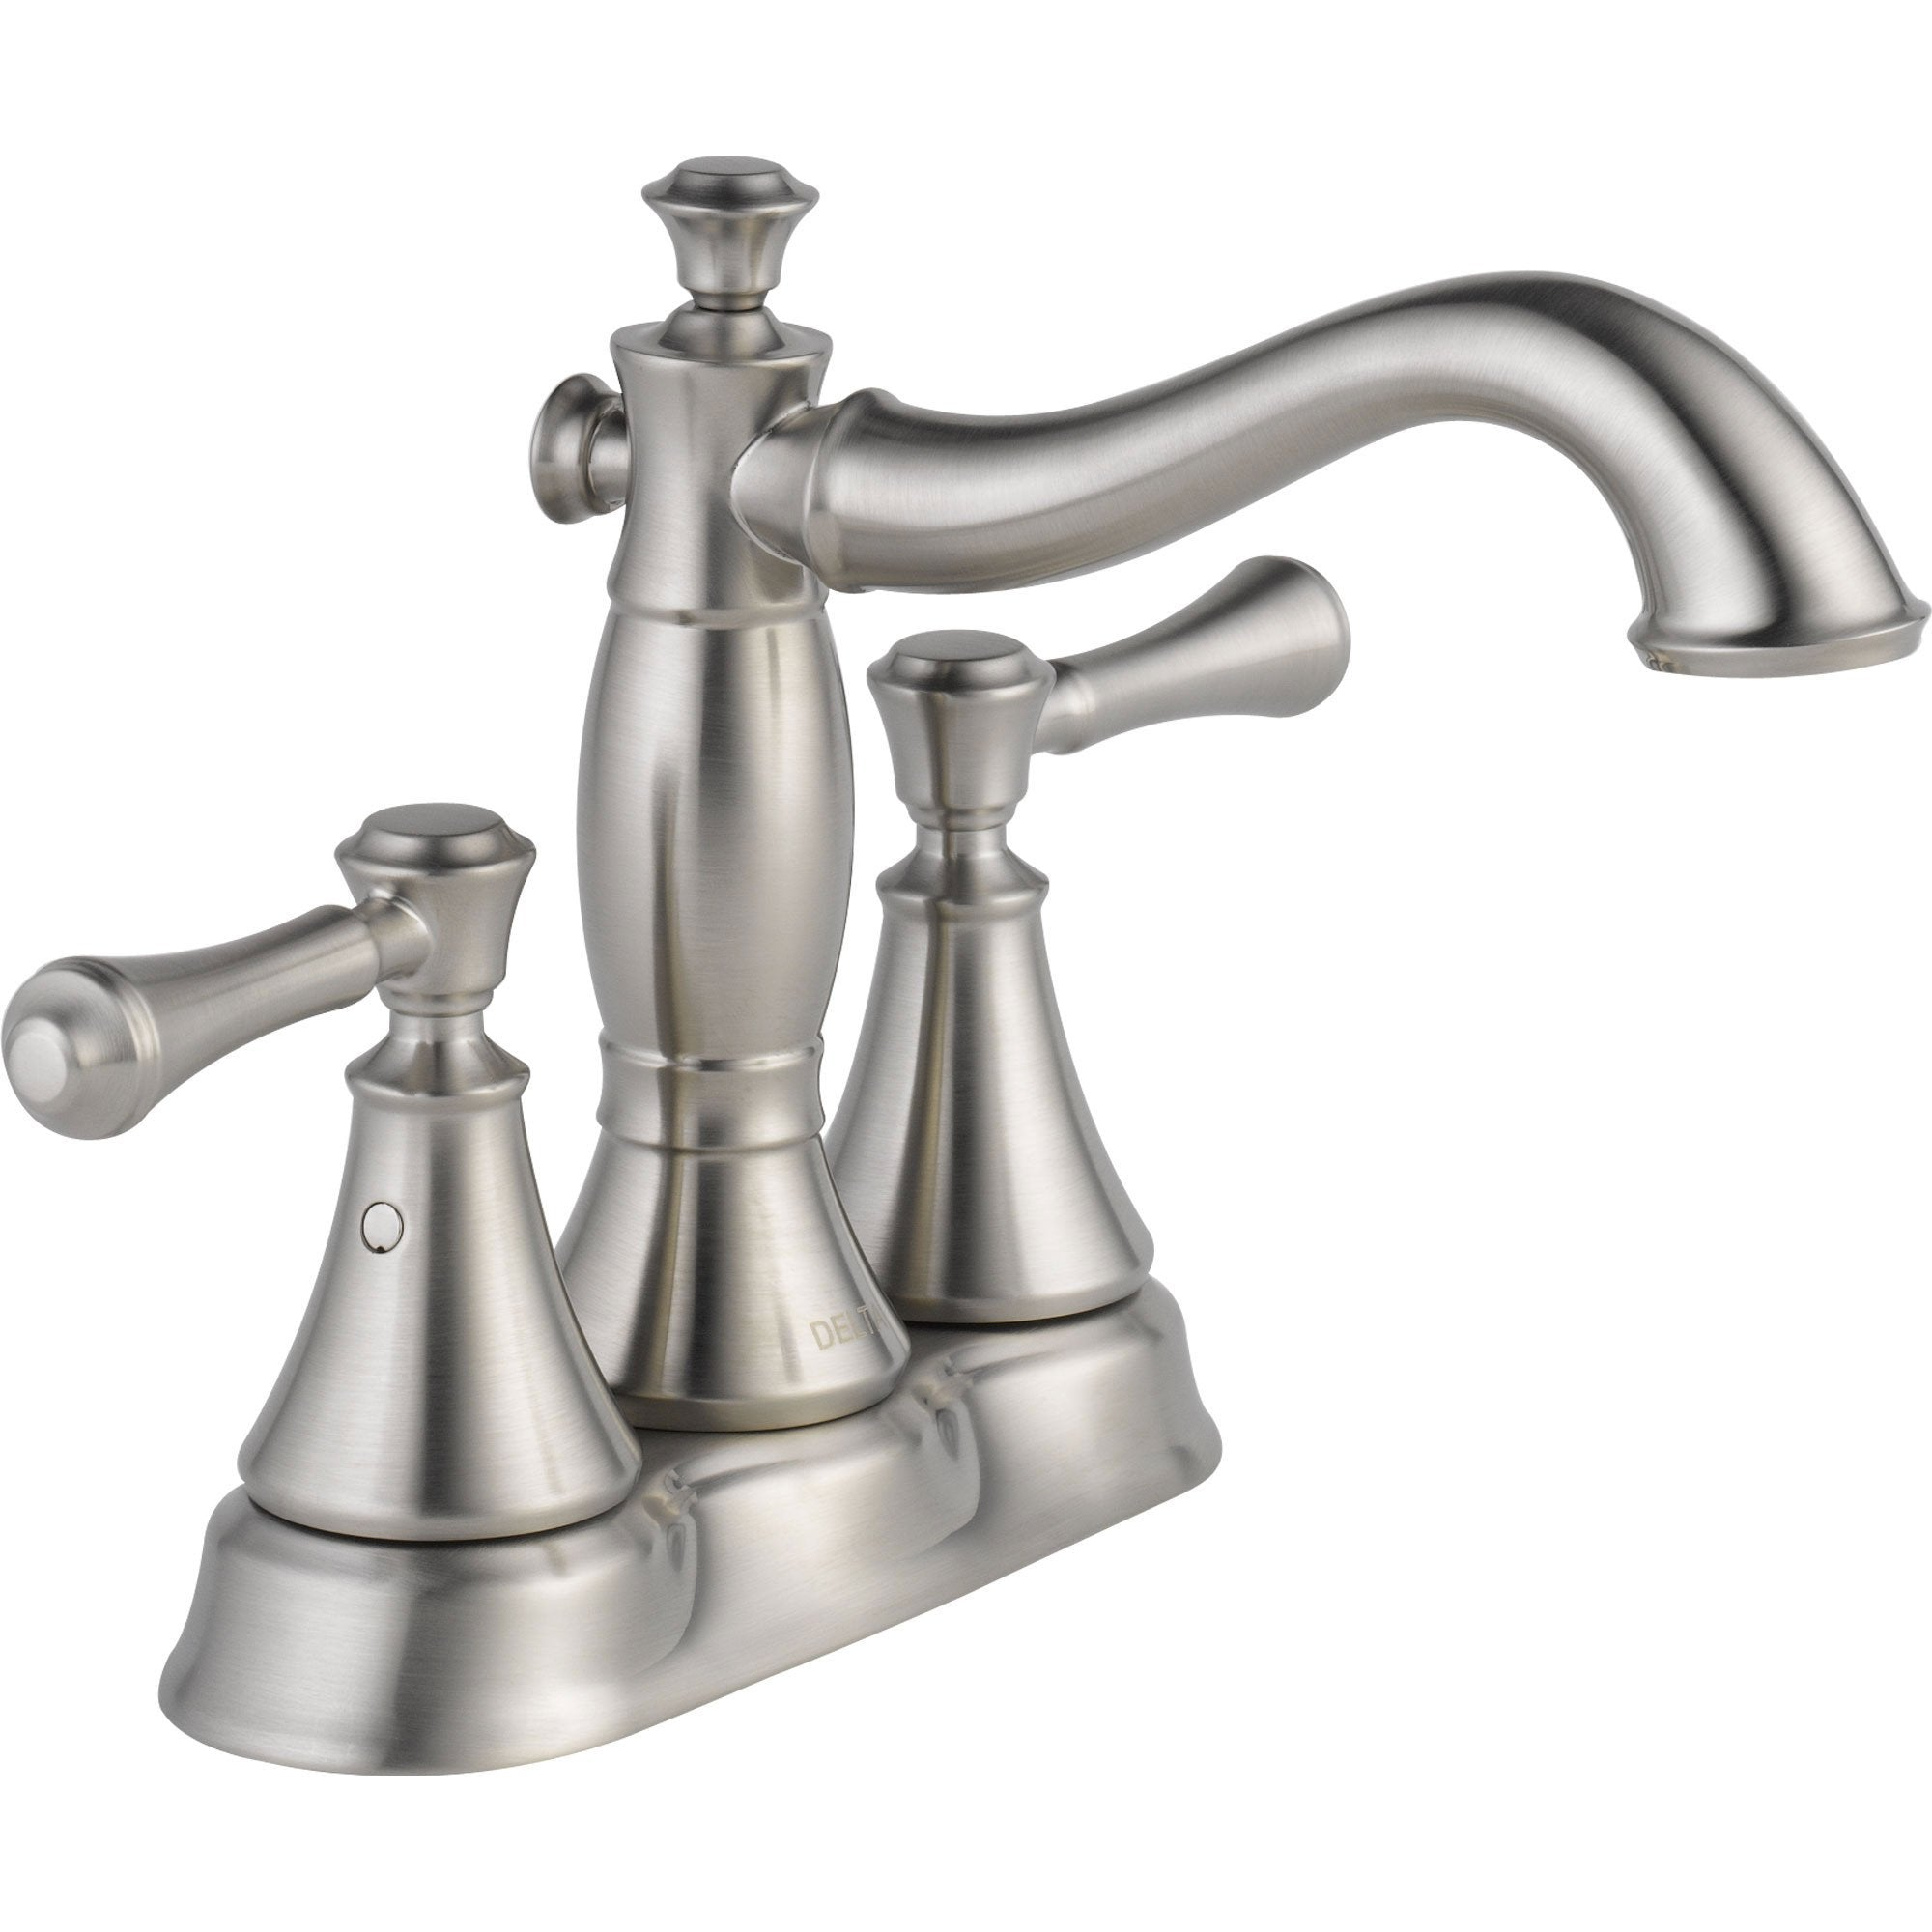 "Delta Cassidy Stainless Finish High Arc 4"" Centerset Bathroom Faucet 579512"